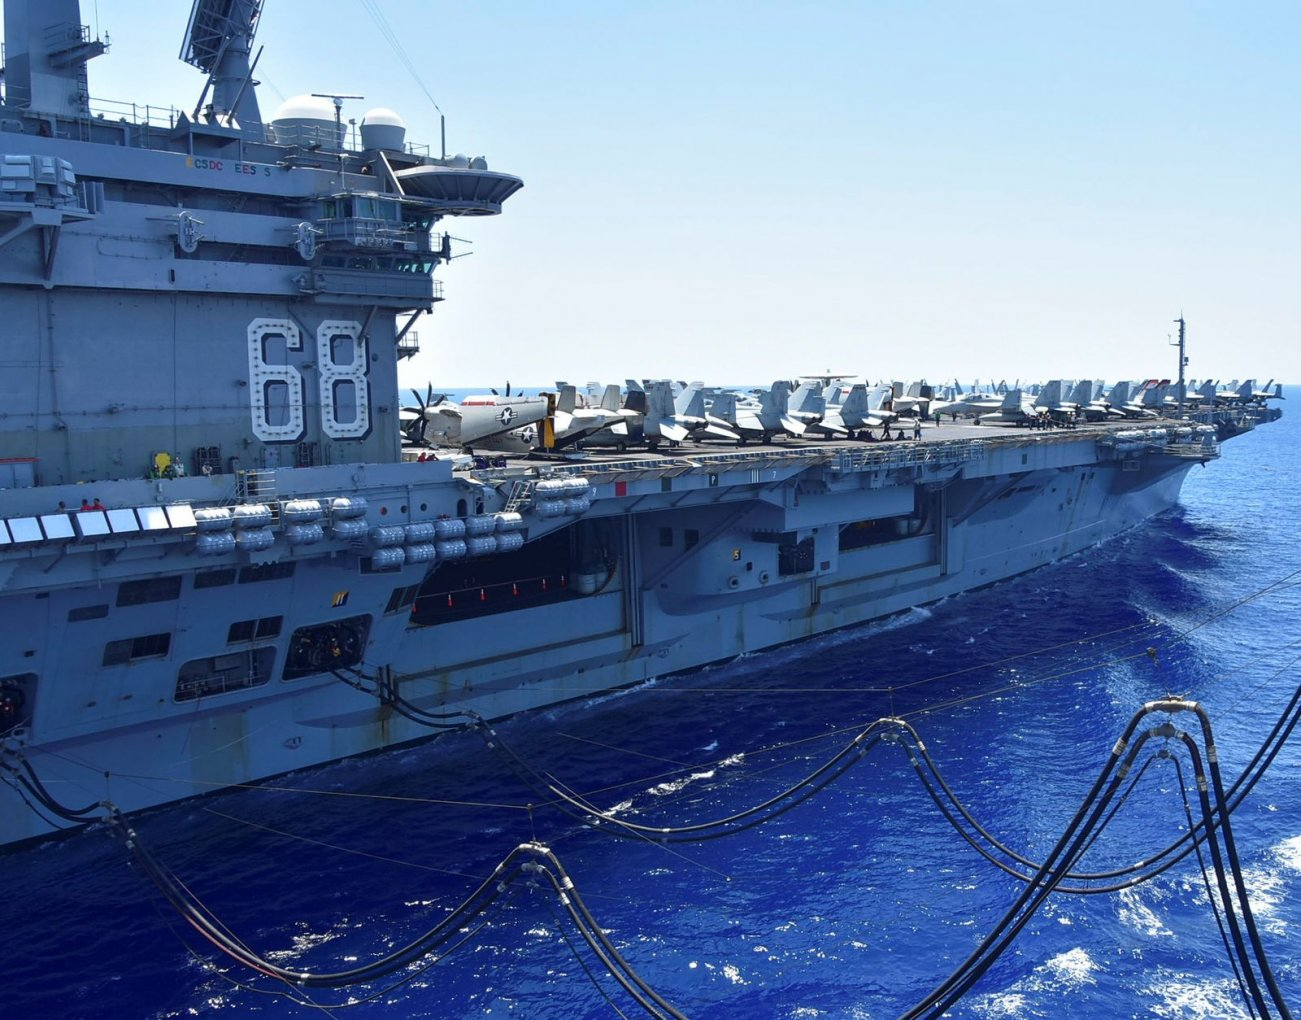 The U.S. Navy Has an Aircraft Carrier Strike Group Off the Coast of Iran